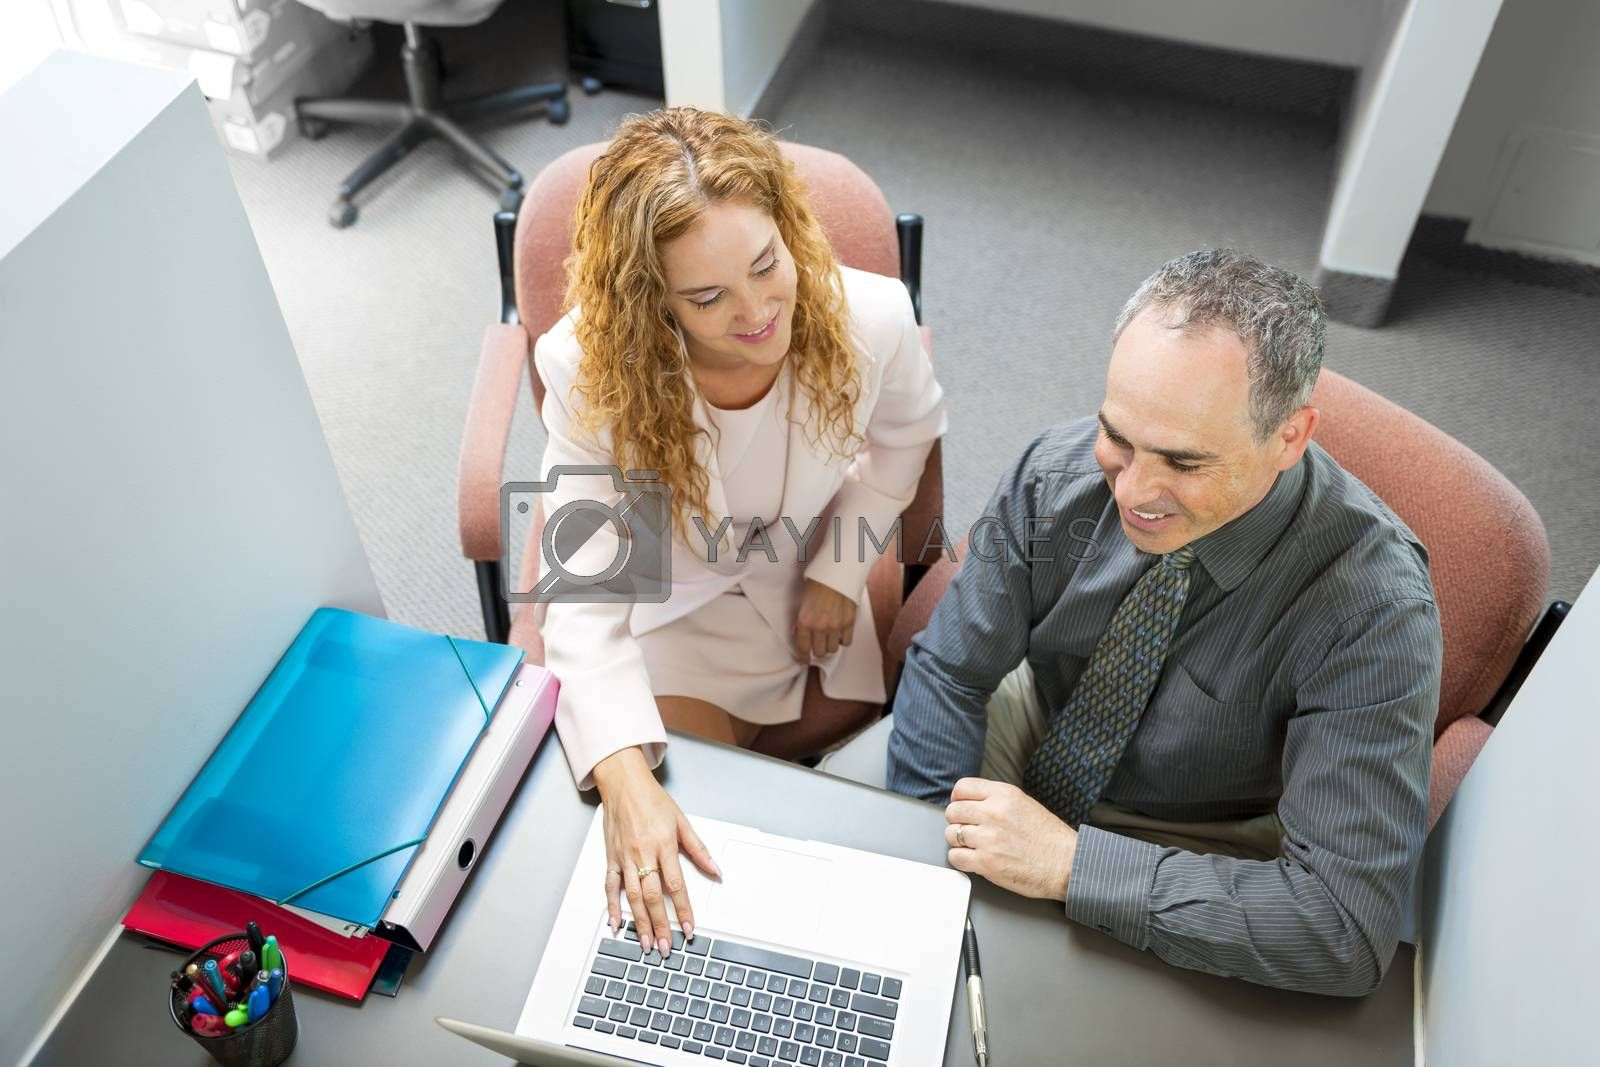 Man and woman sitting at desk with computer in office